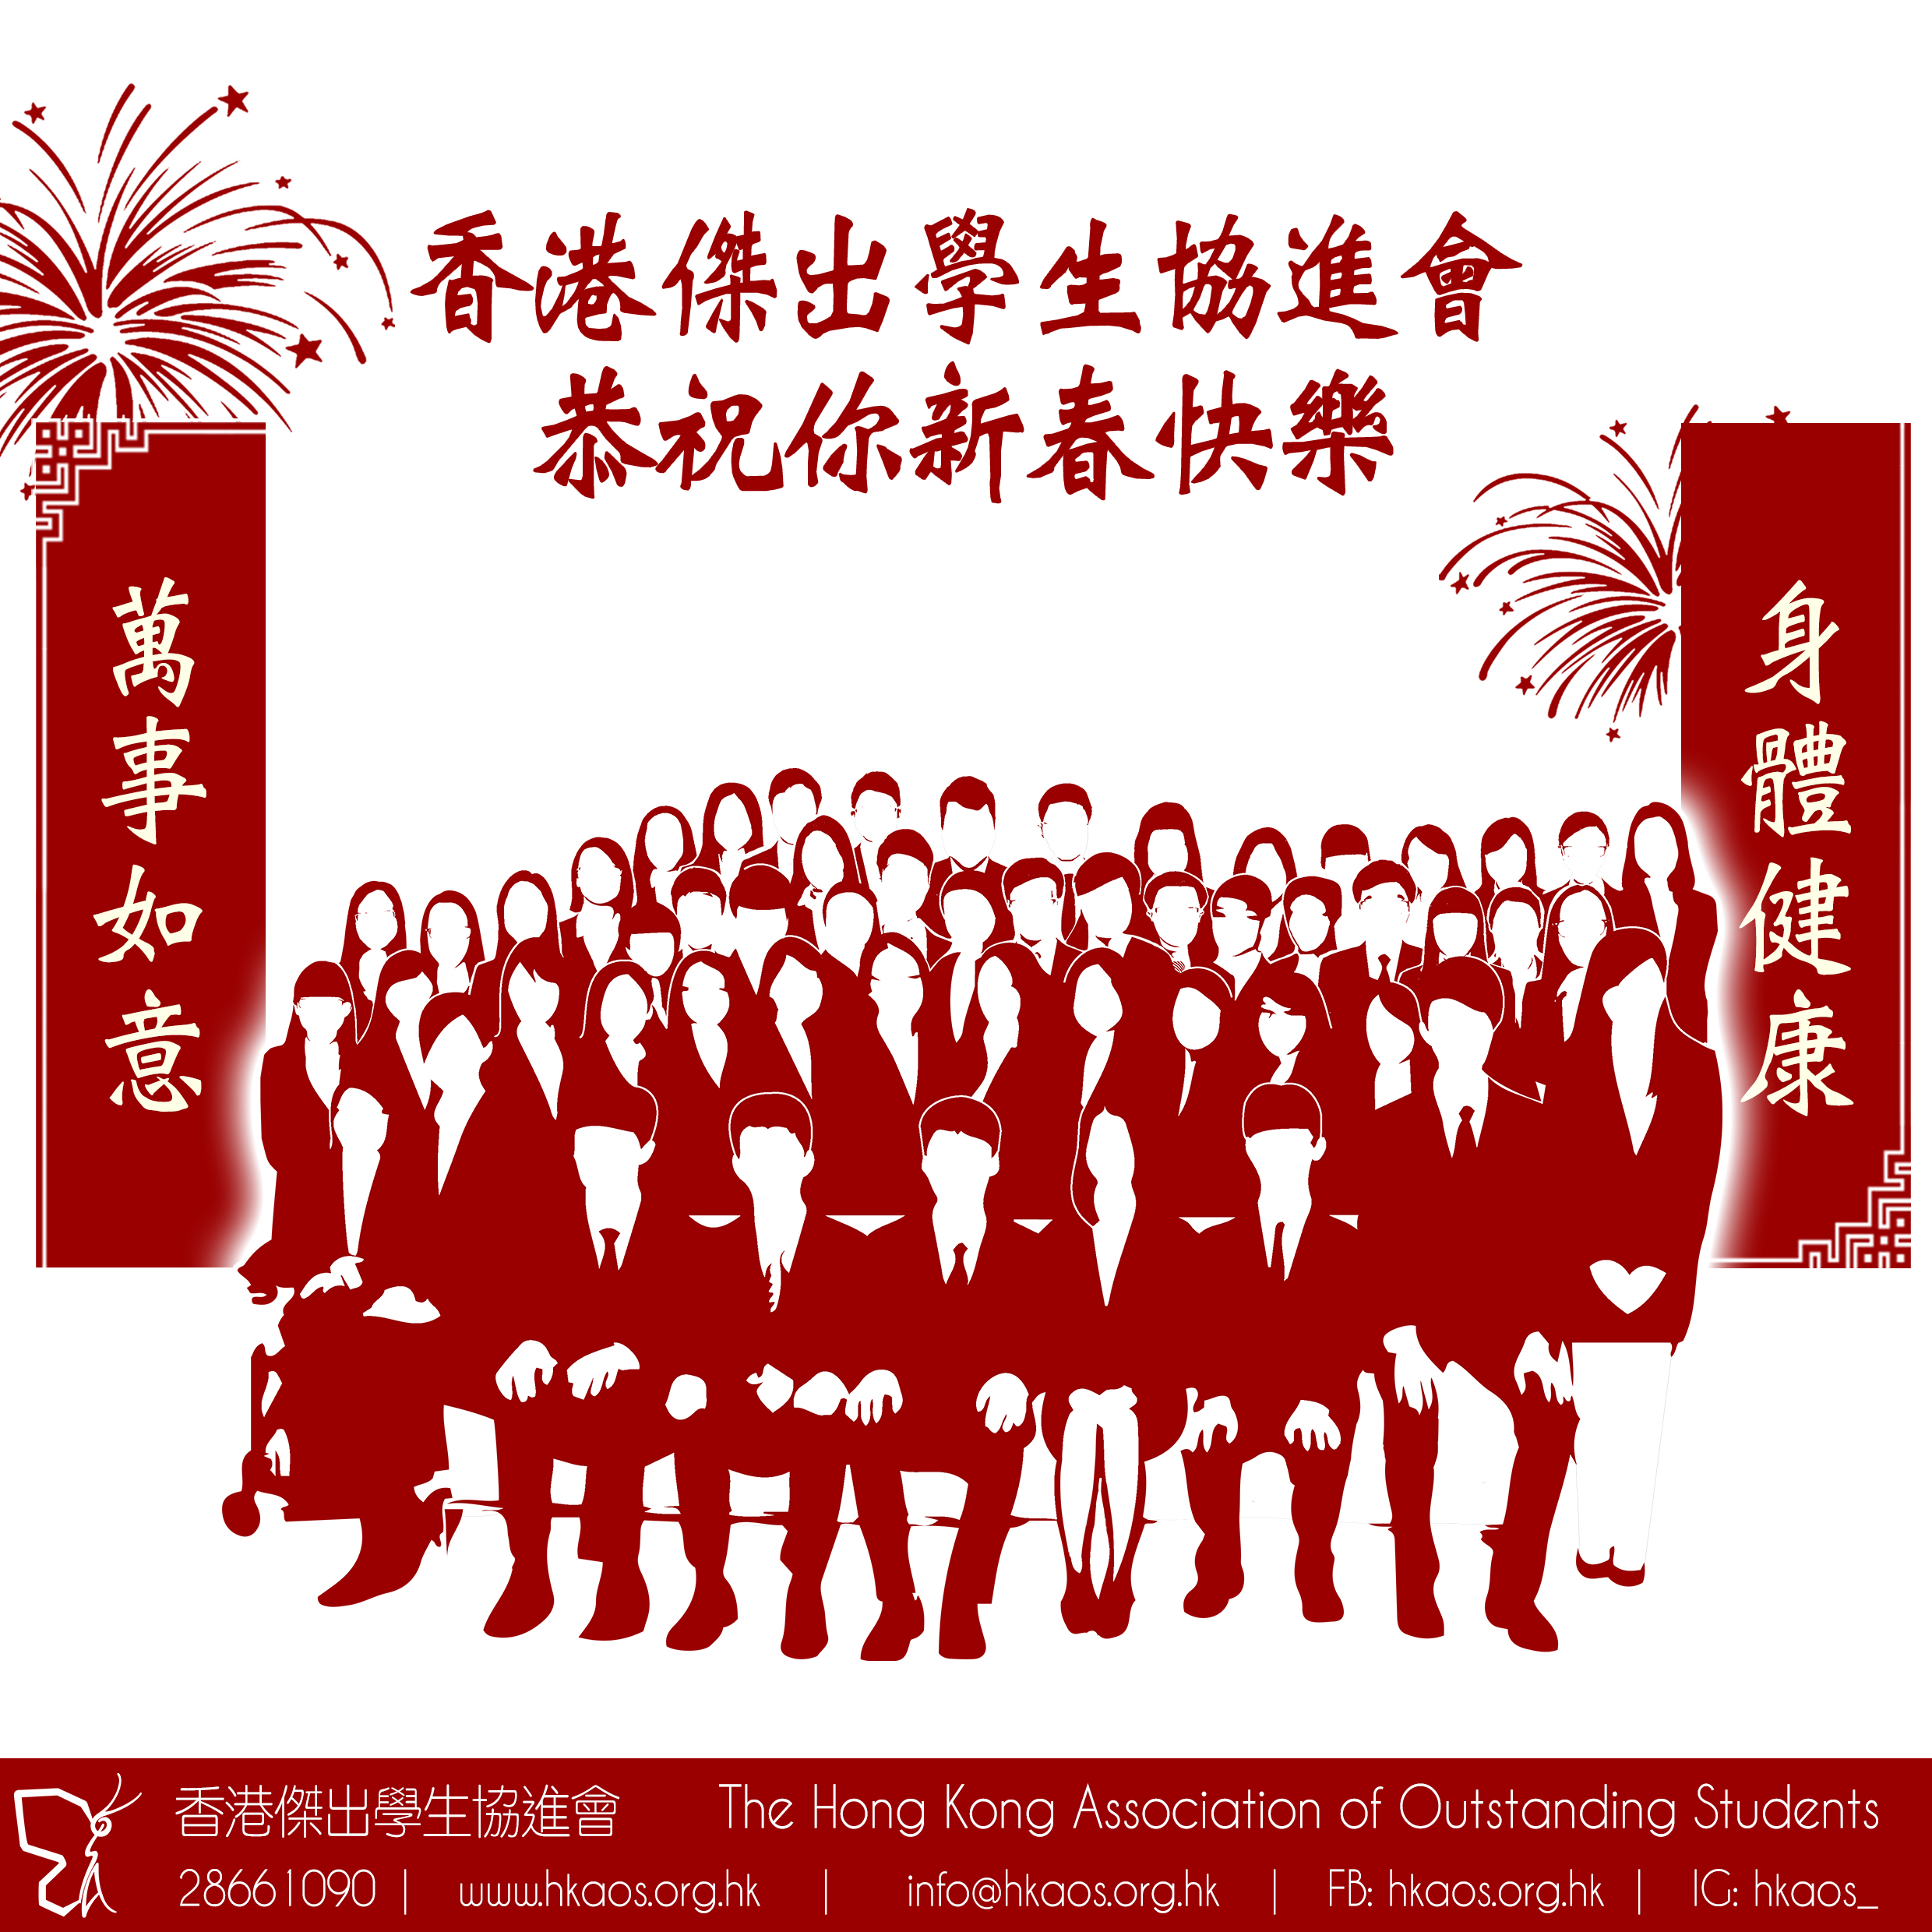 HKAOS - We wish you a happy lunar new year.